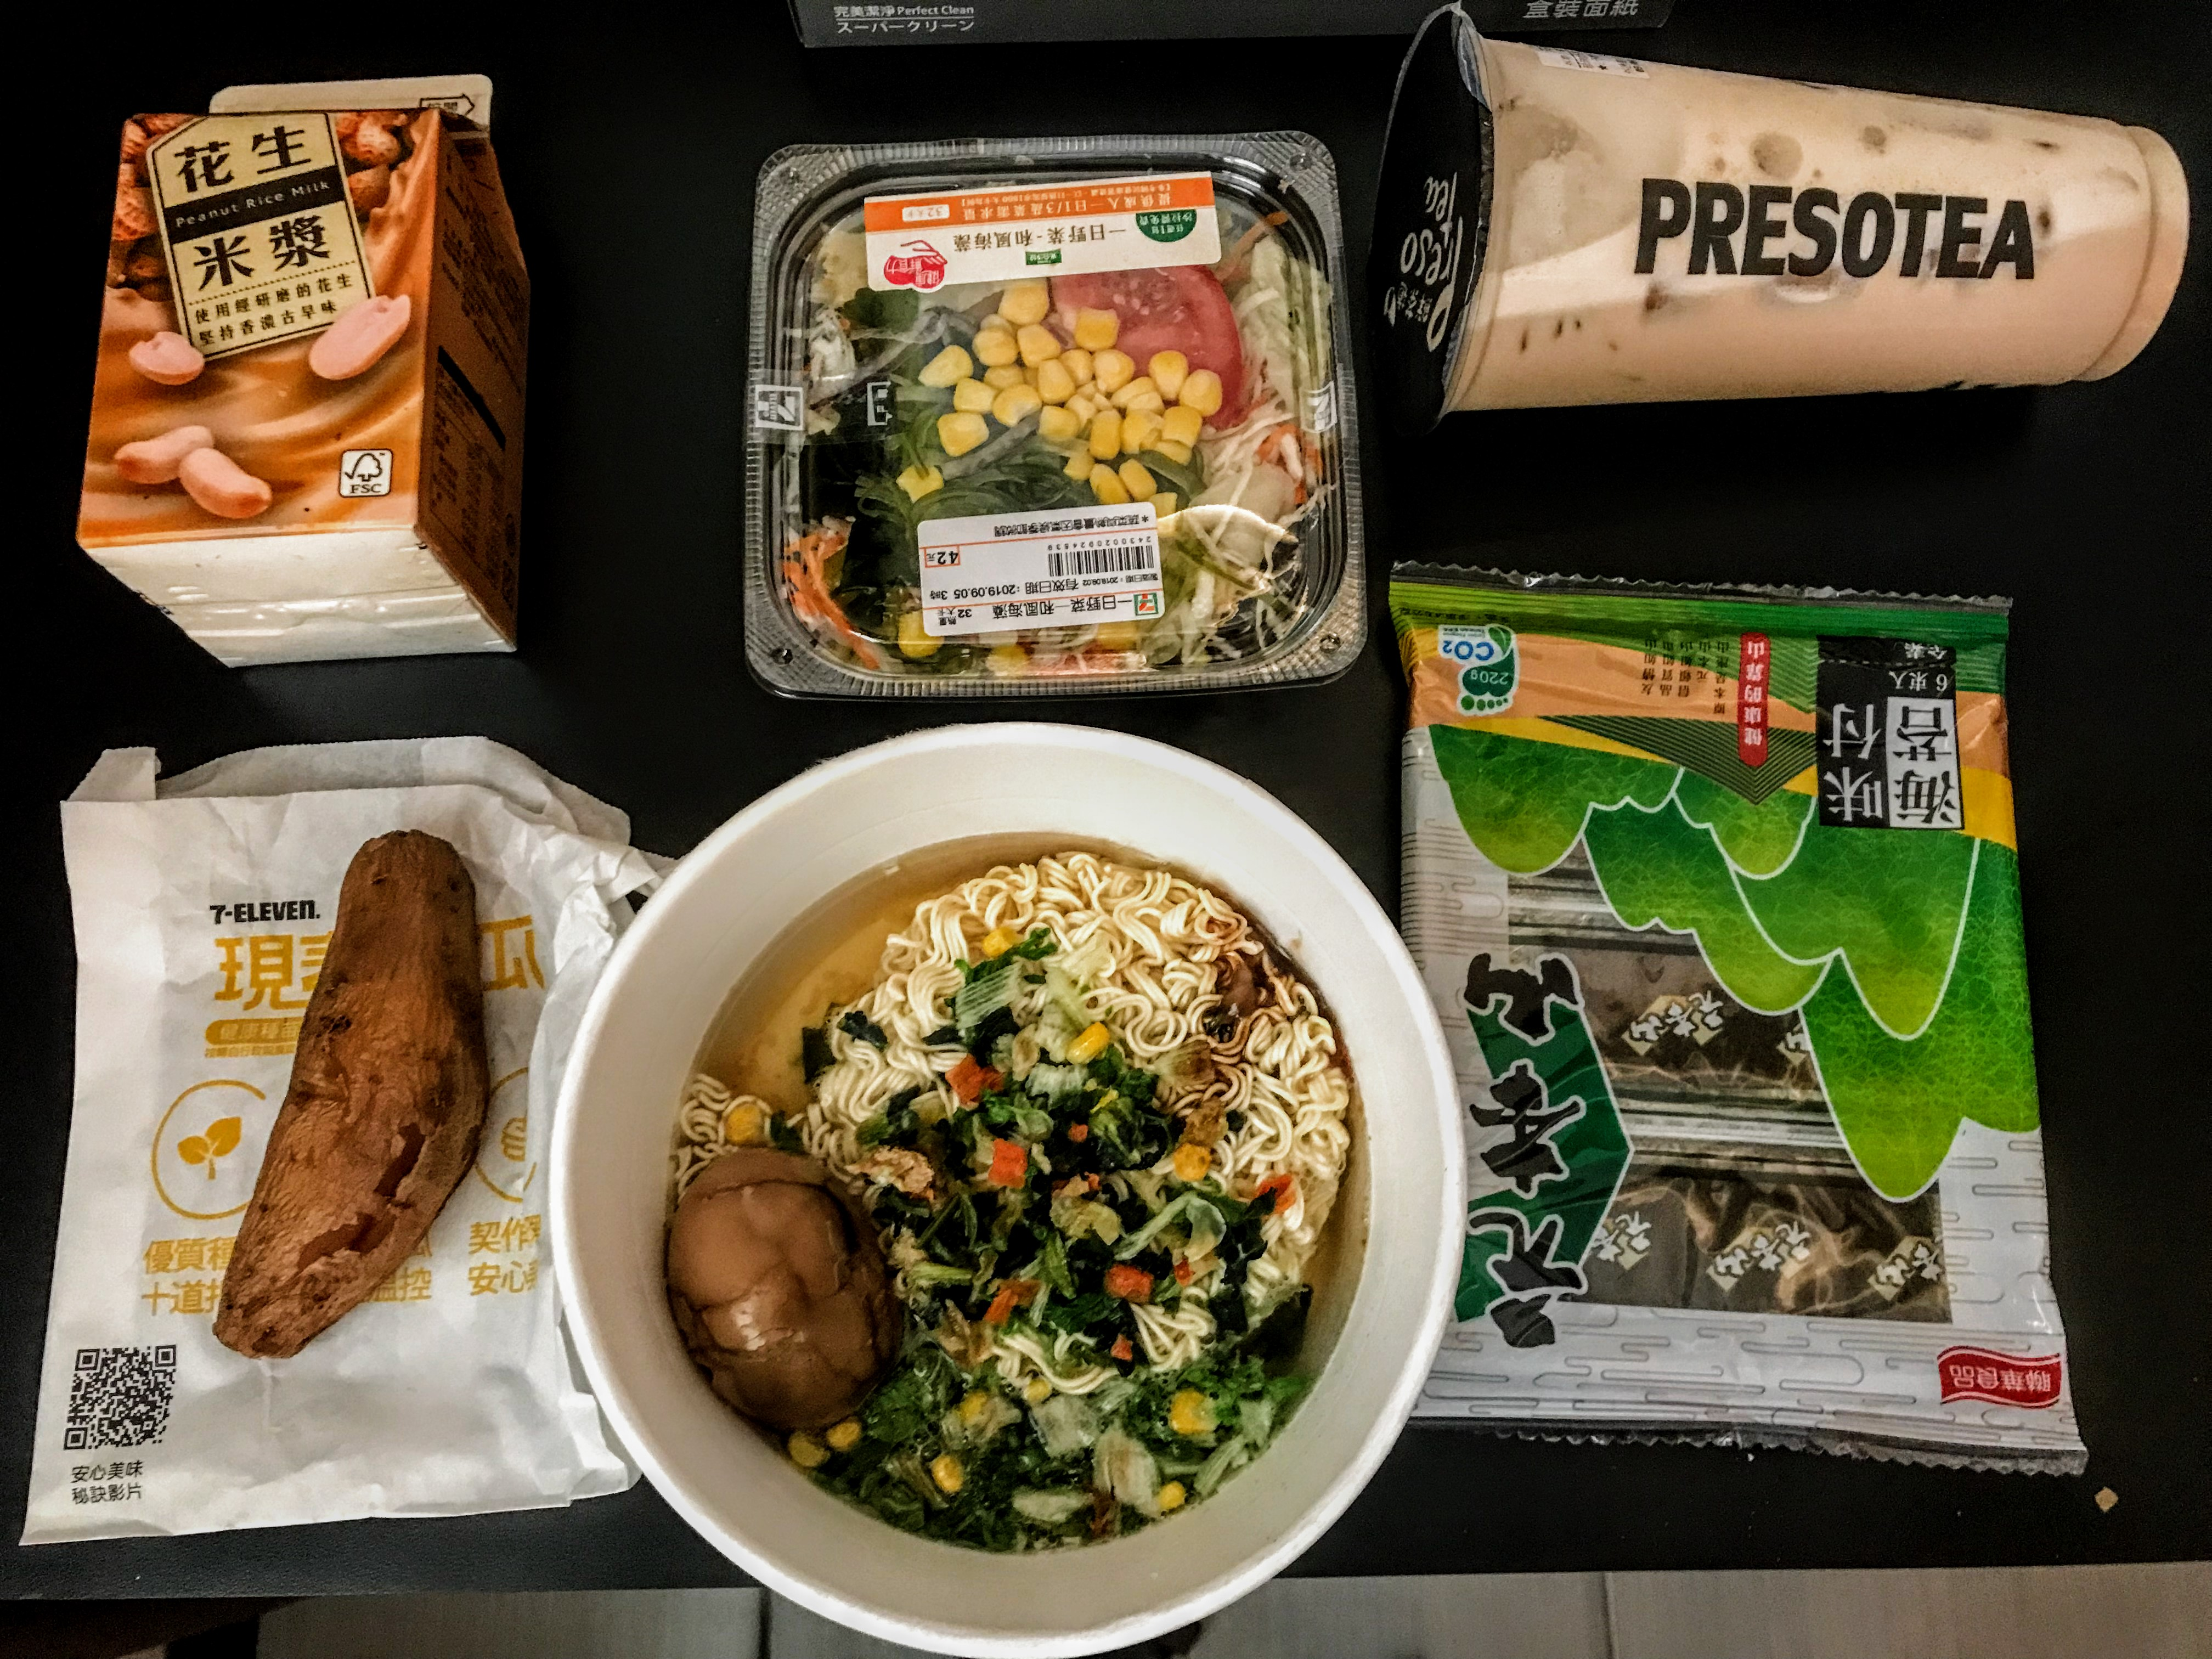 11 vegetarian foods to buy from supermarkets like 7-Eleven in Taiwan